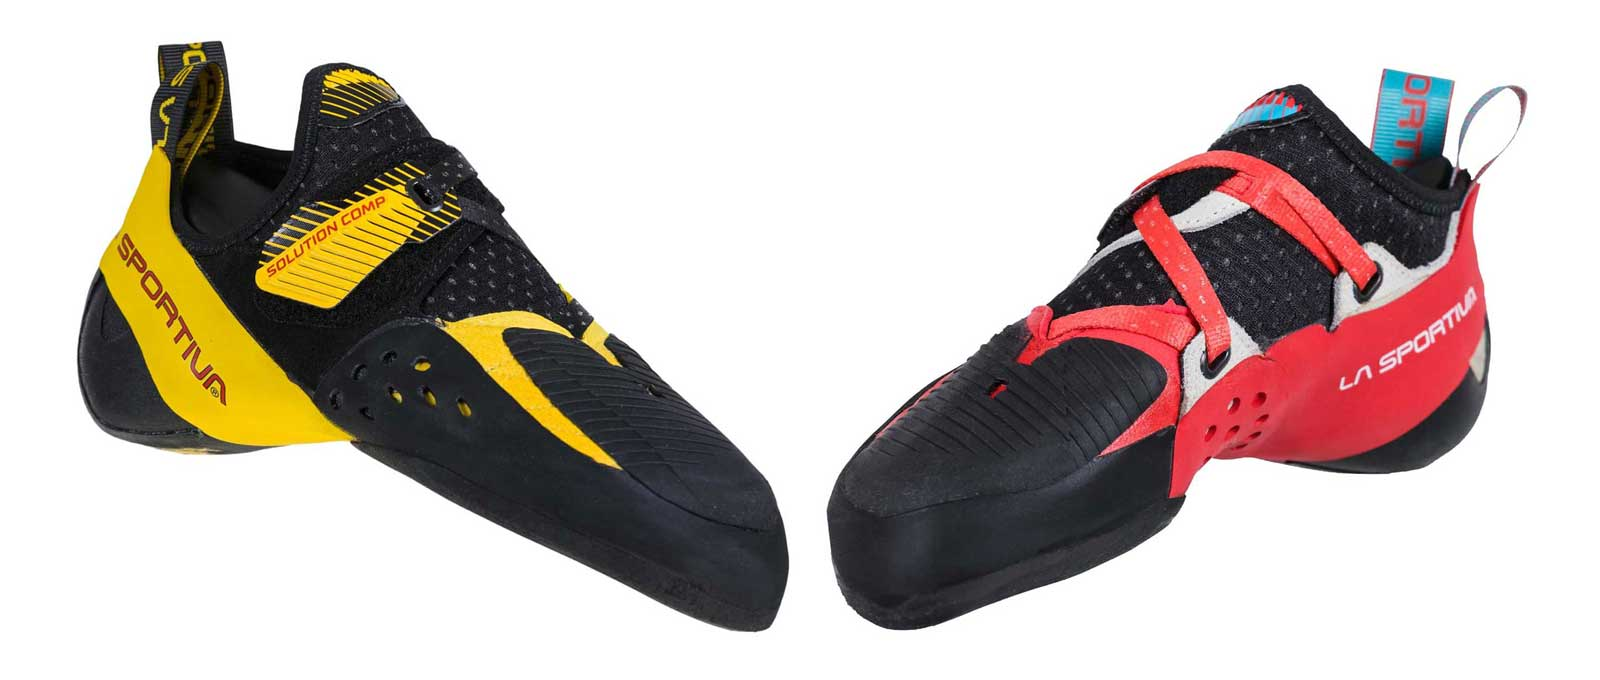 Solution Comp Climbing Shoe Review - By